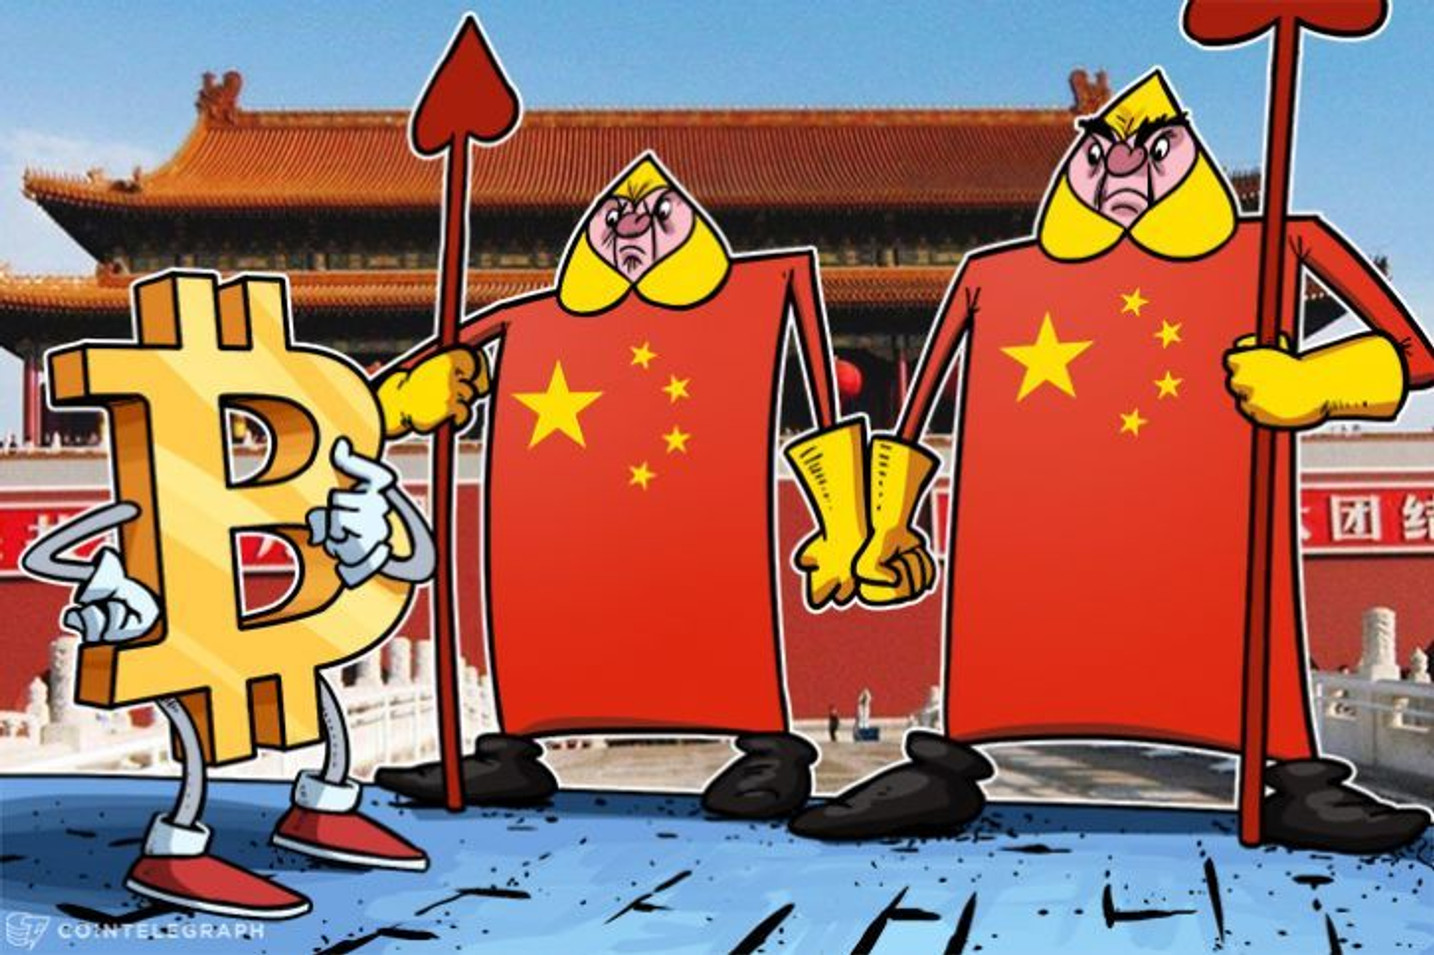 PBoC Governor Believes Bitcoin Will Die, But Chinese Market Disagrees